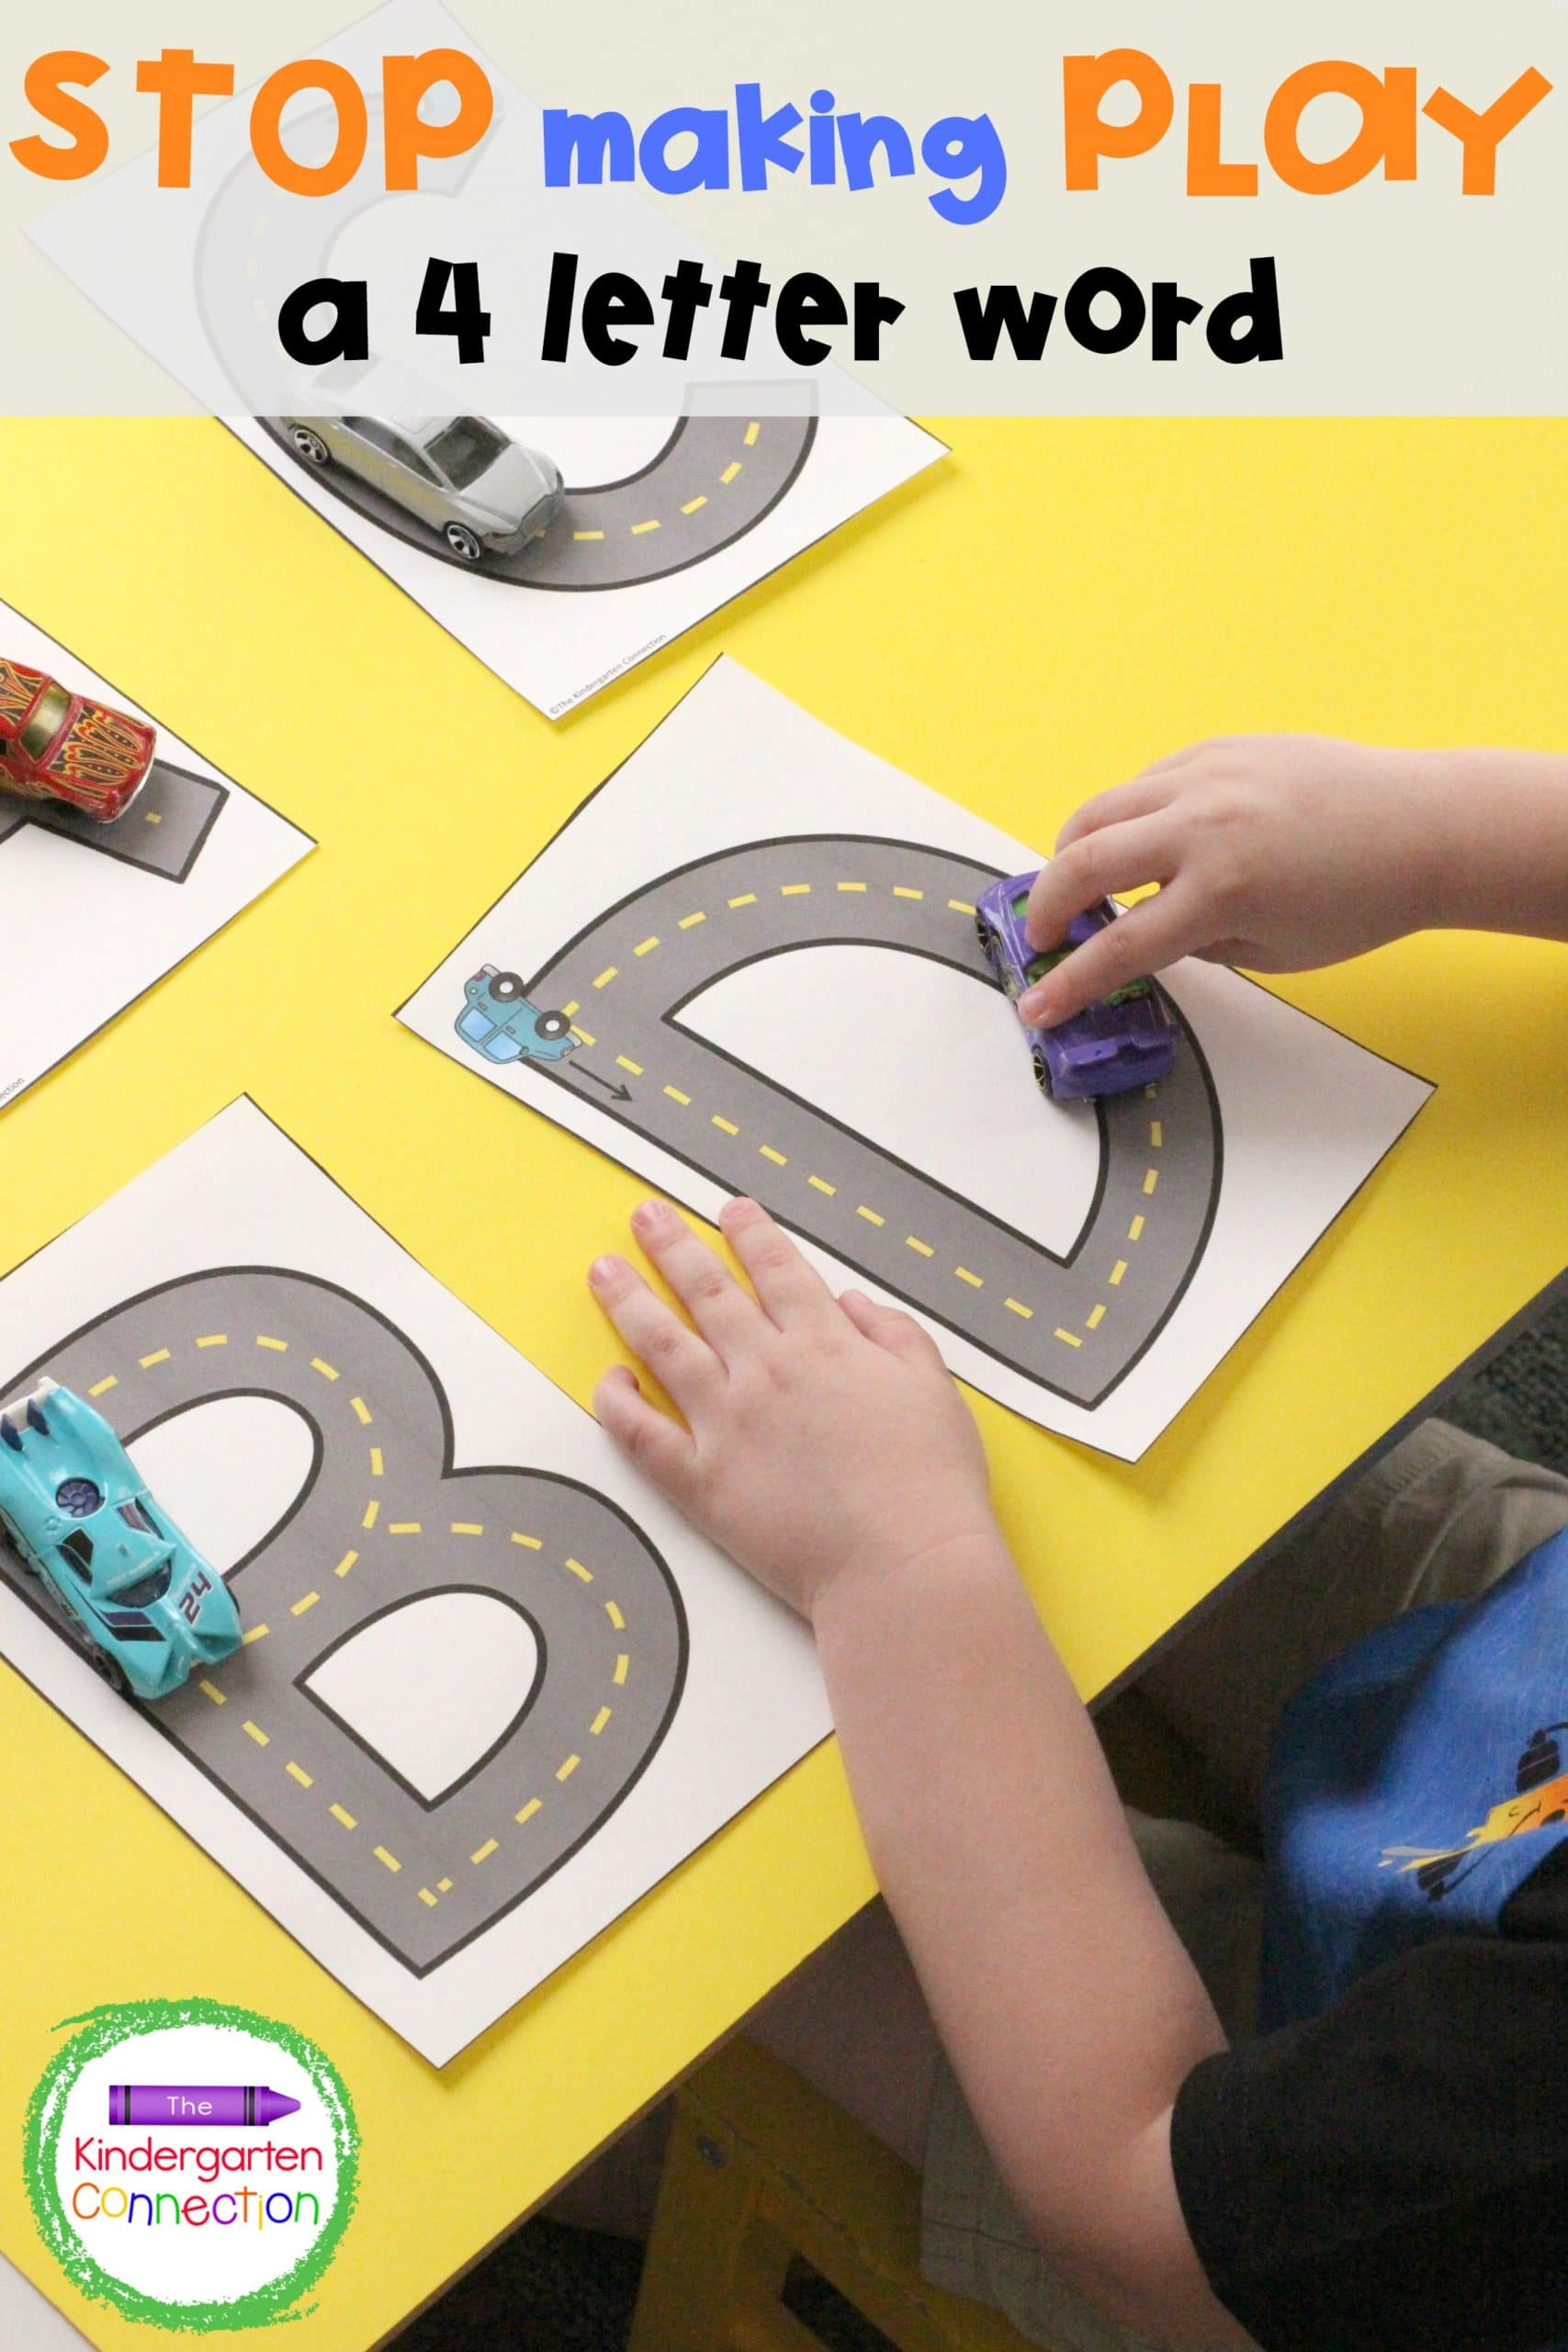 Bring back authentic and intentional play in the classroom and stop making play a four letter word! Practical tips for kindergarten teachers to incorporate to make a playful, educational classroom!